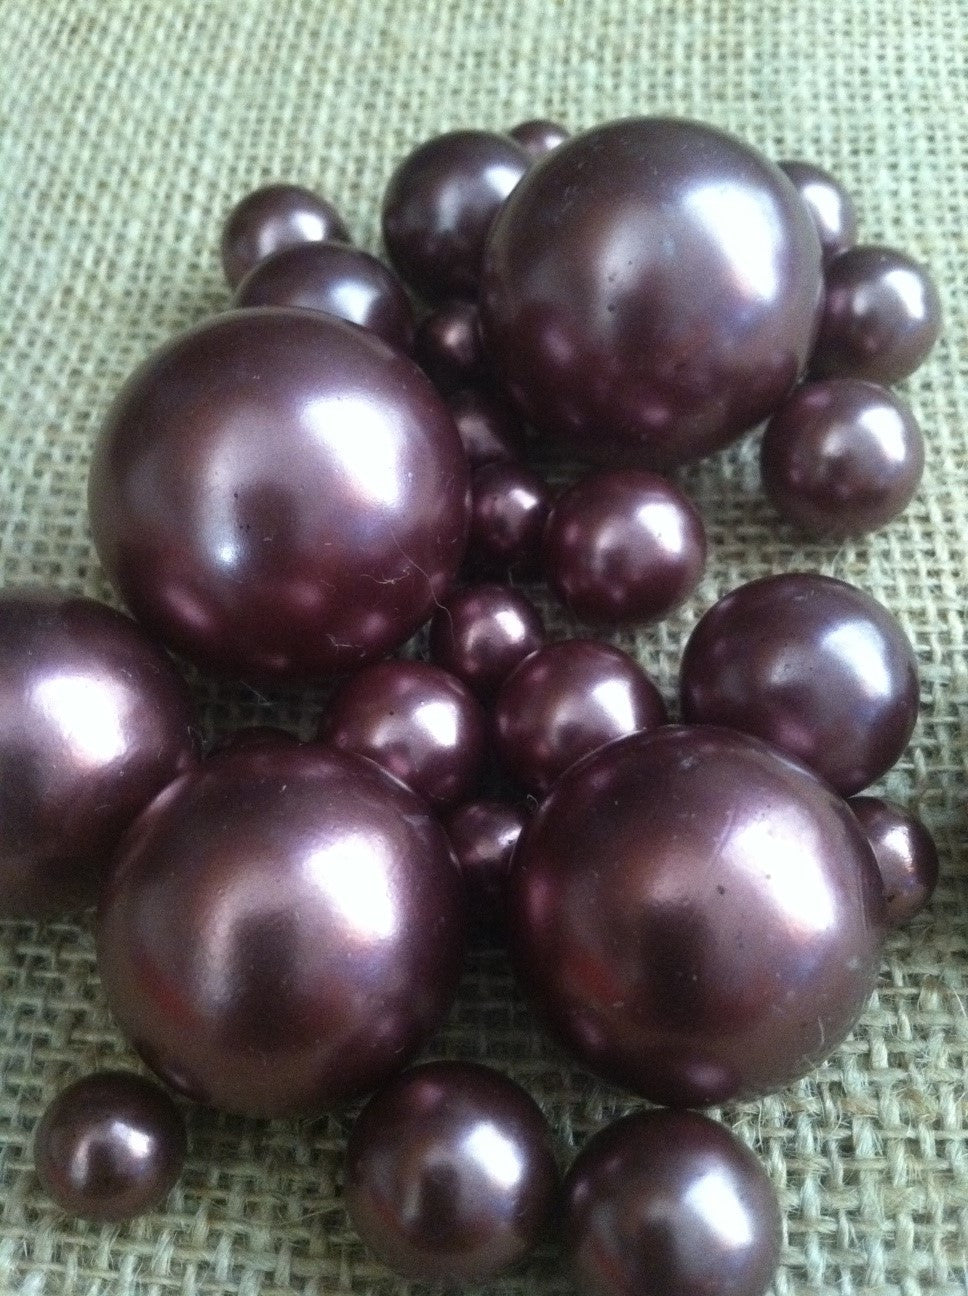 Chocolate Brown Pearls For Floating Pearl Centerpieces, Jumbo Pearls Vase Fillers, Scatters, Confetti